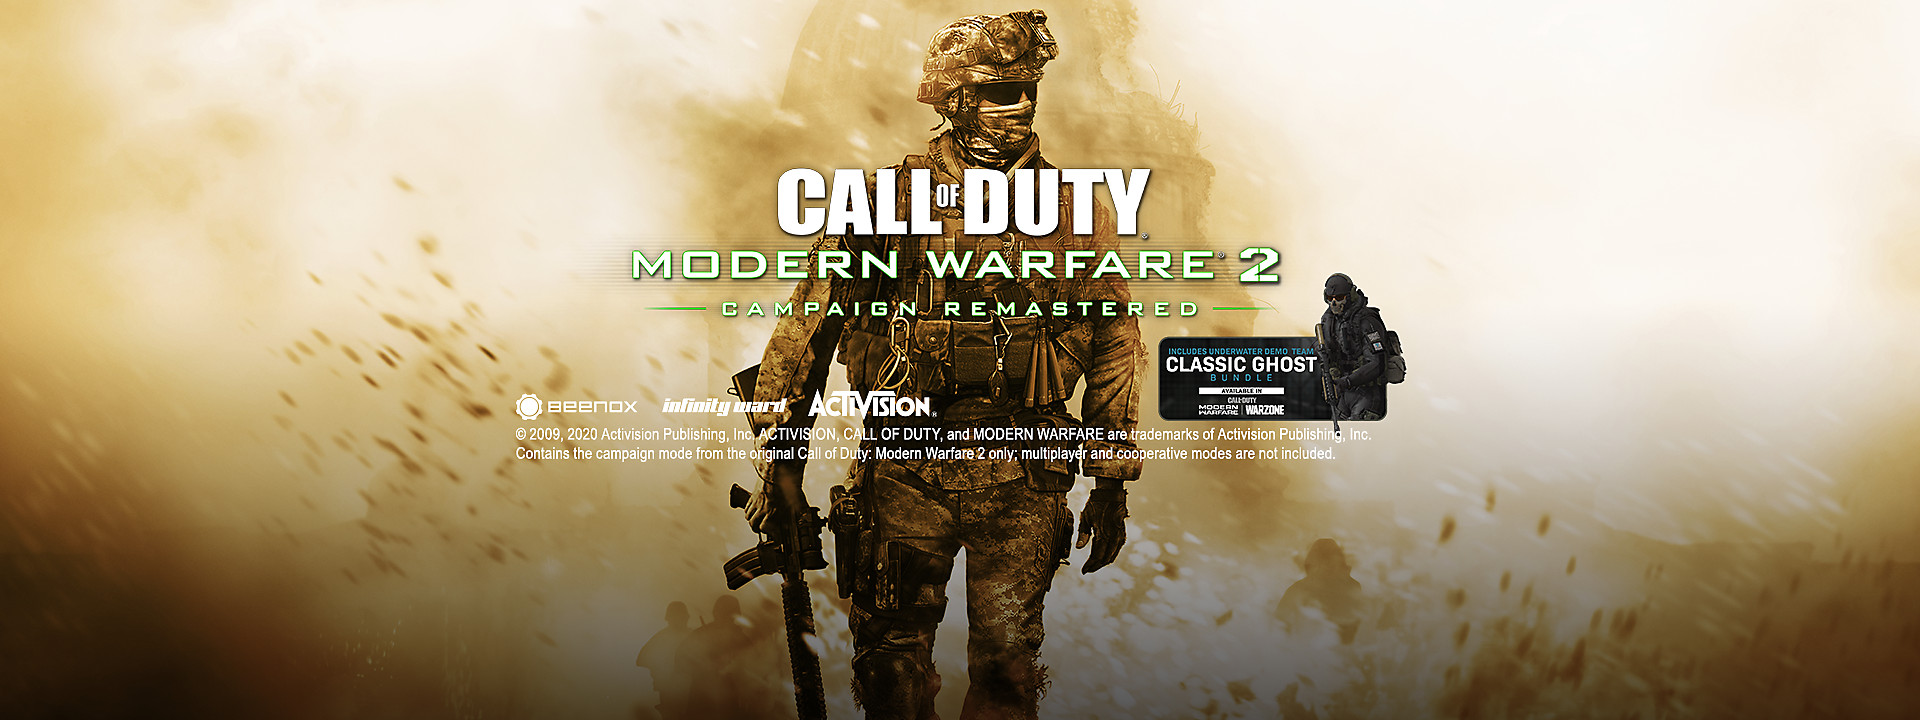 Call of Duty: Modern Warfare 2 Campaign Remastered  - Now Available